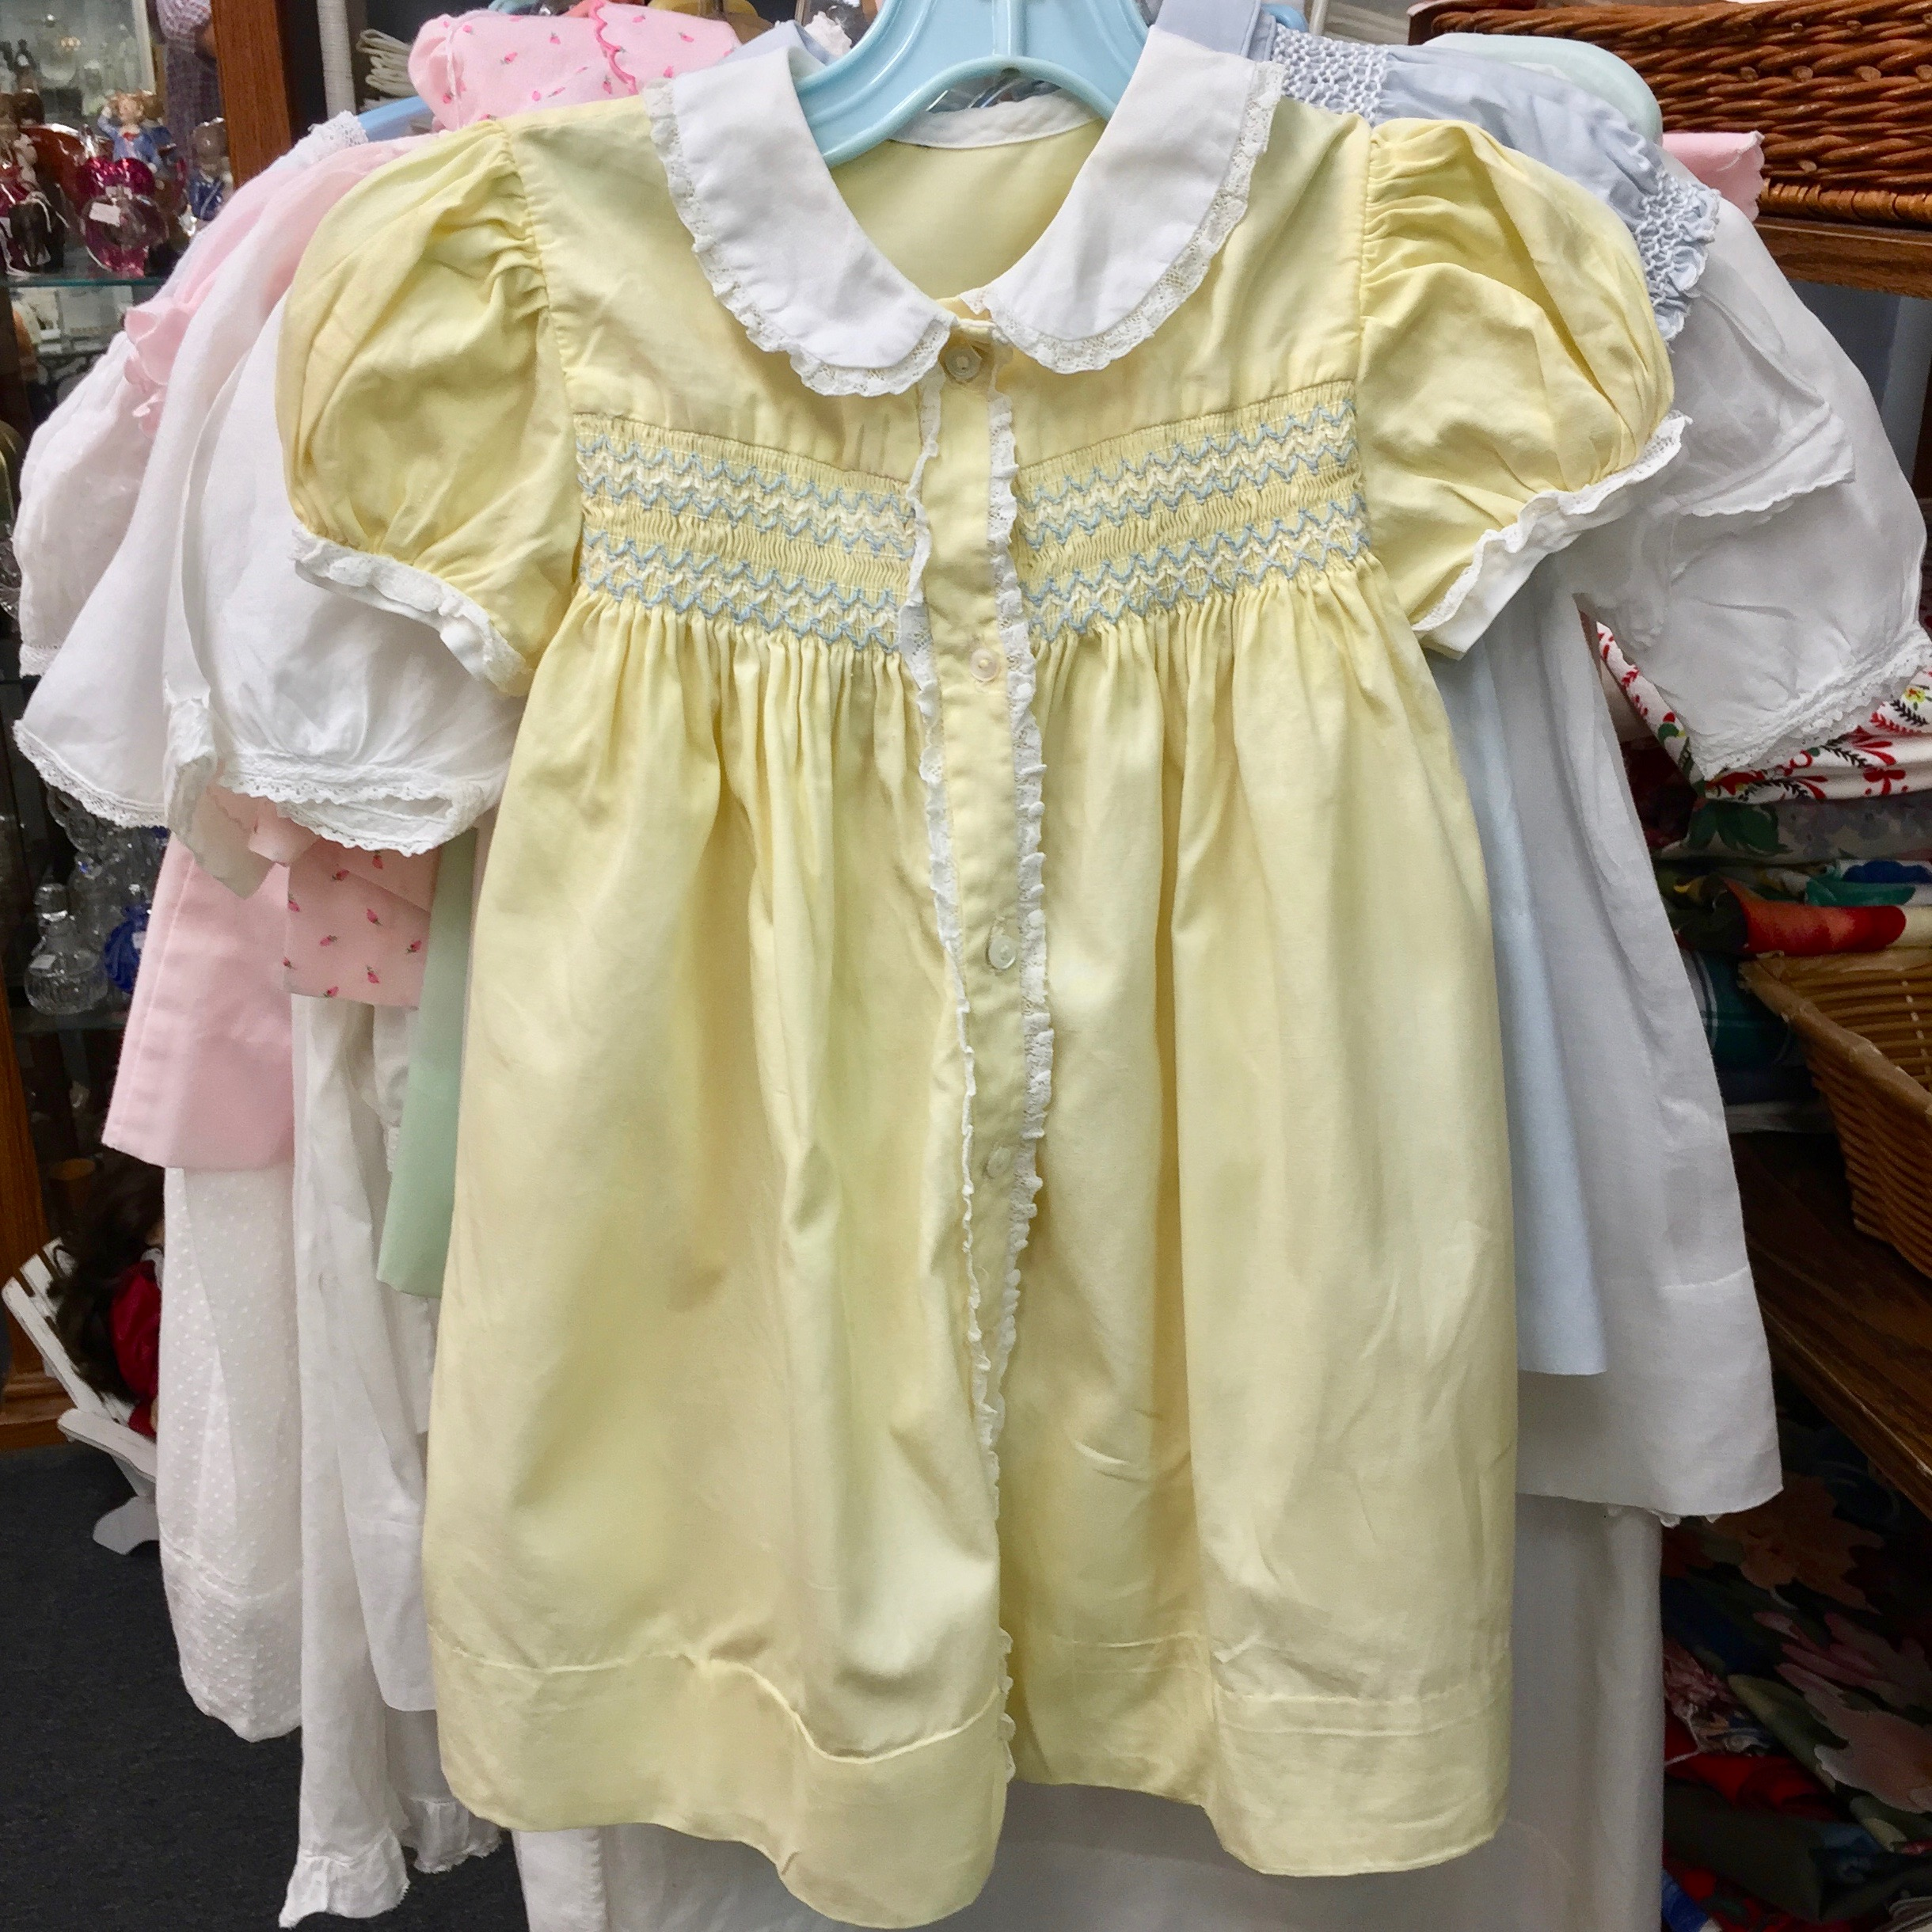 Vintage Children's Dresses